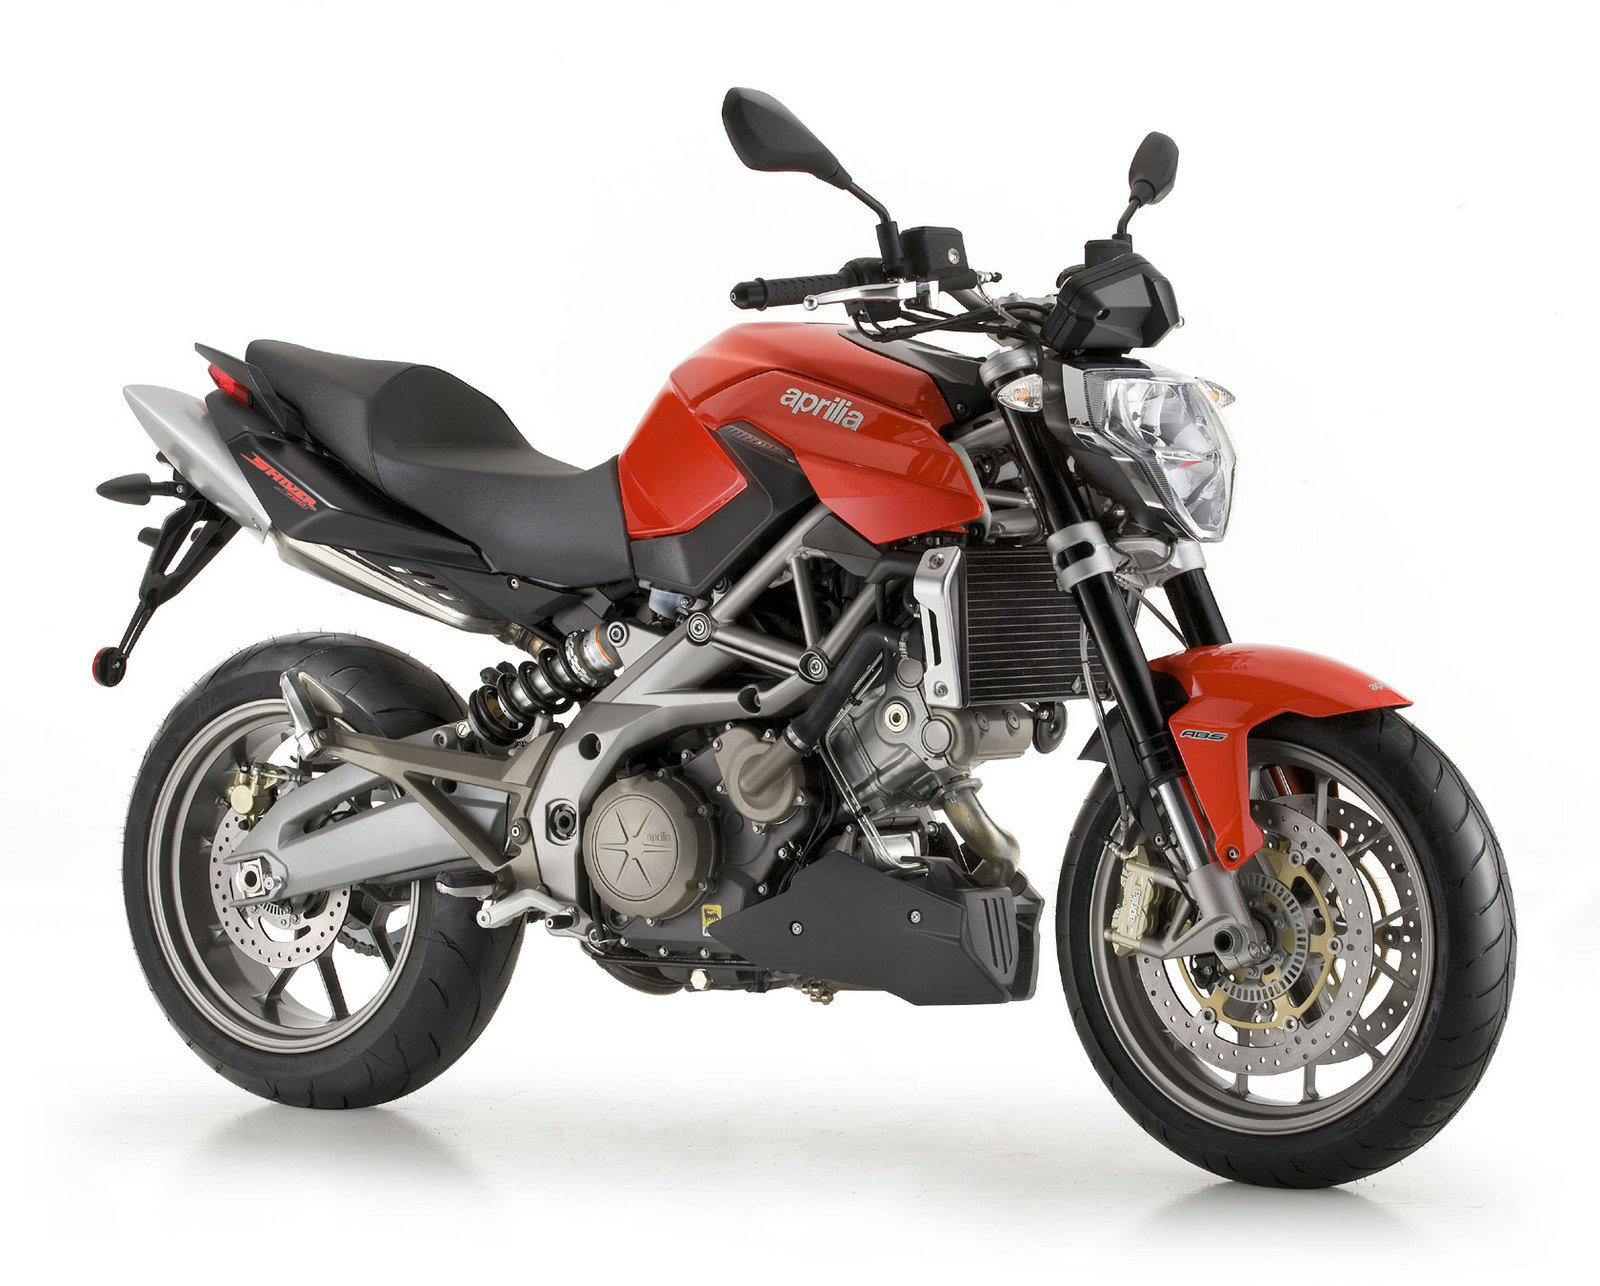 2009 aprilia shiver 750 abs review top speed. Black Bedroom Furniture Sets. Home Design Ideas